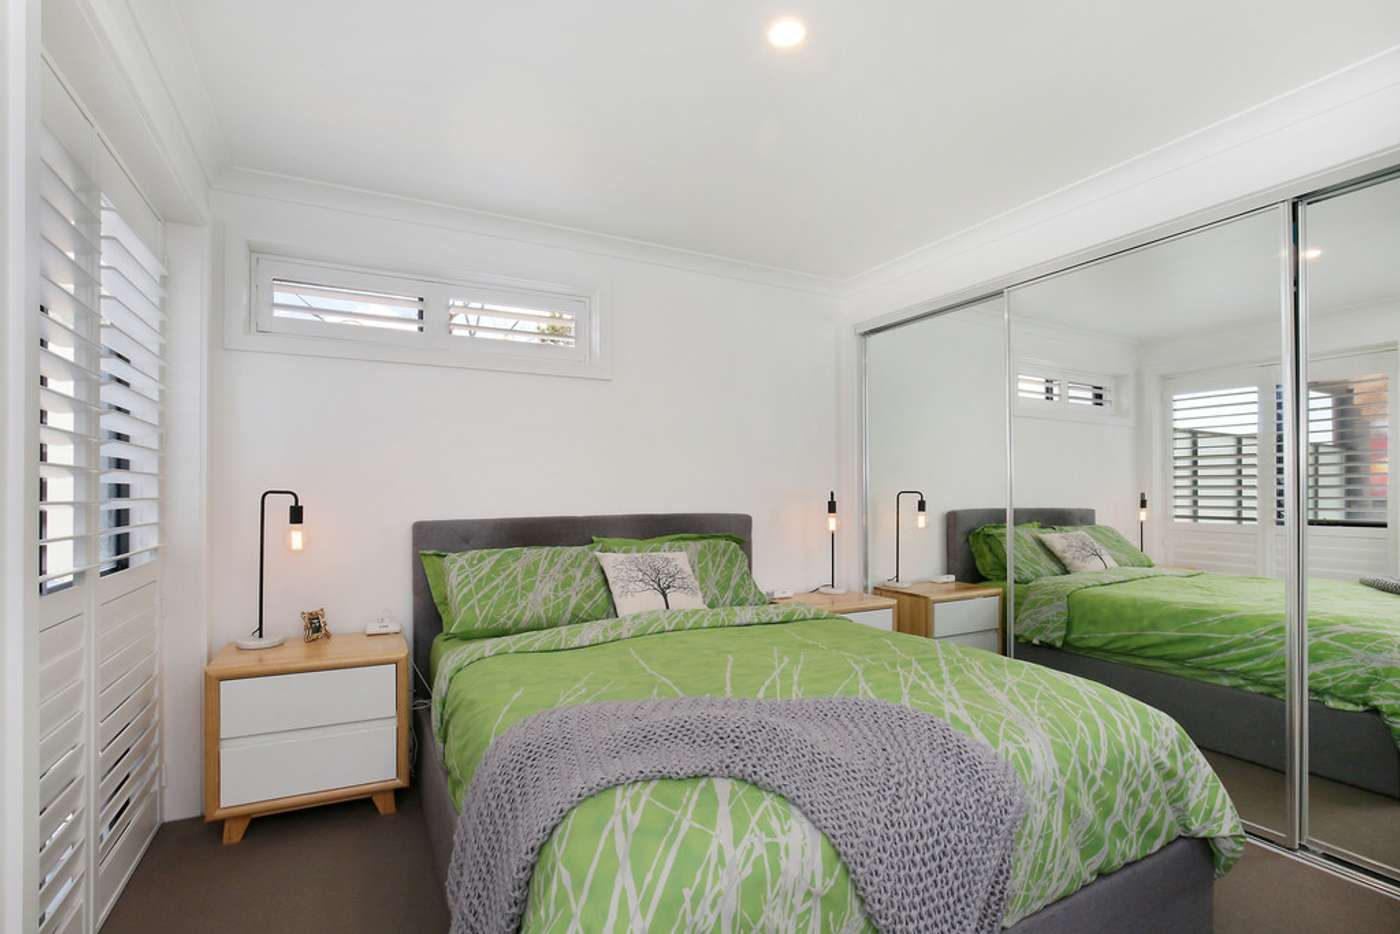 Fifth view of Homely apartment listing, 105/138 Darebin Road, Northcote VIC 3070